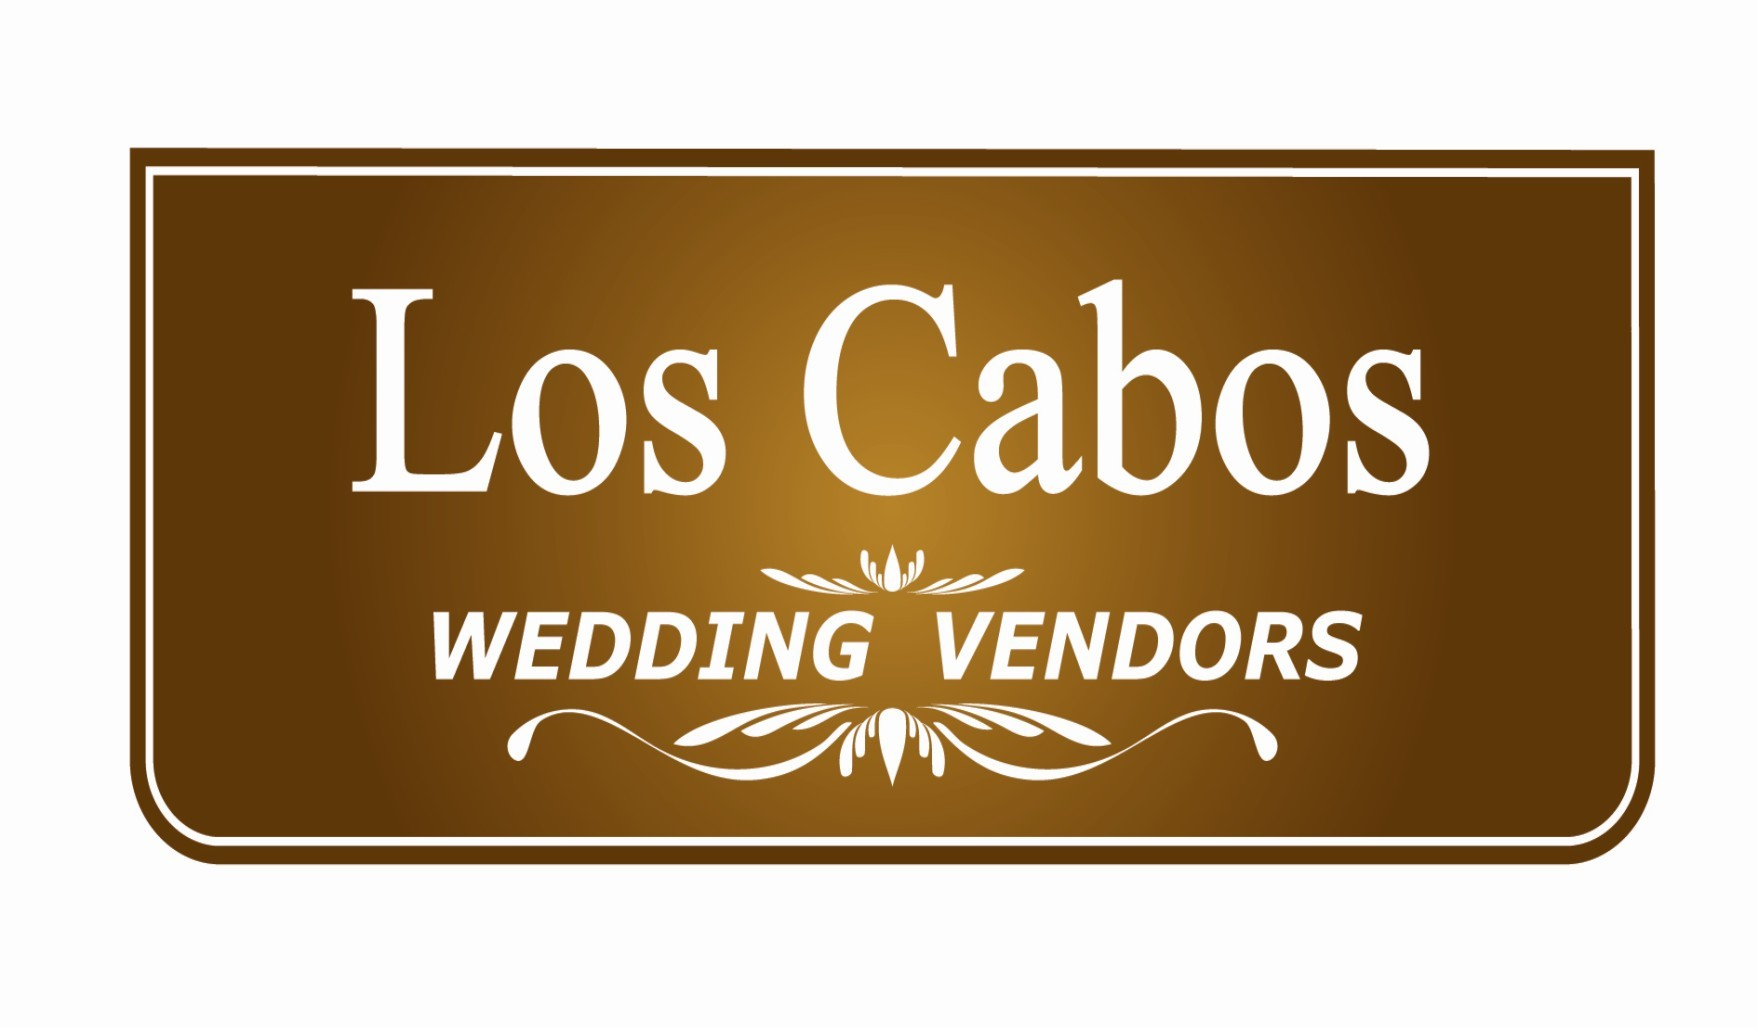 Beauty, Ceremony, Reception, Flowers & Decor, Jewelry, Cakes, Destinations, brown, cake, Makeup, Ceremony Flowers, Flowers, Wedding, Hair, Destination, Weddings, In, Ideas, Vendors, Photographers, Los, Cabos, Coordinators, Videographers, Suppliers, Providers, Los cabos wedding vendors